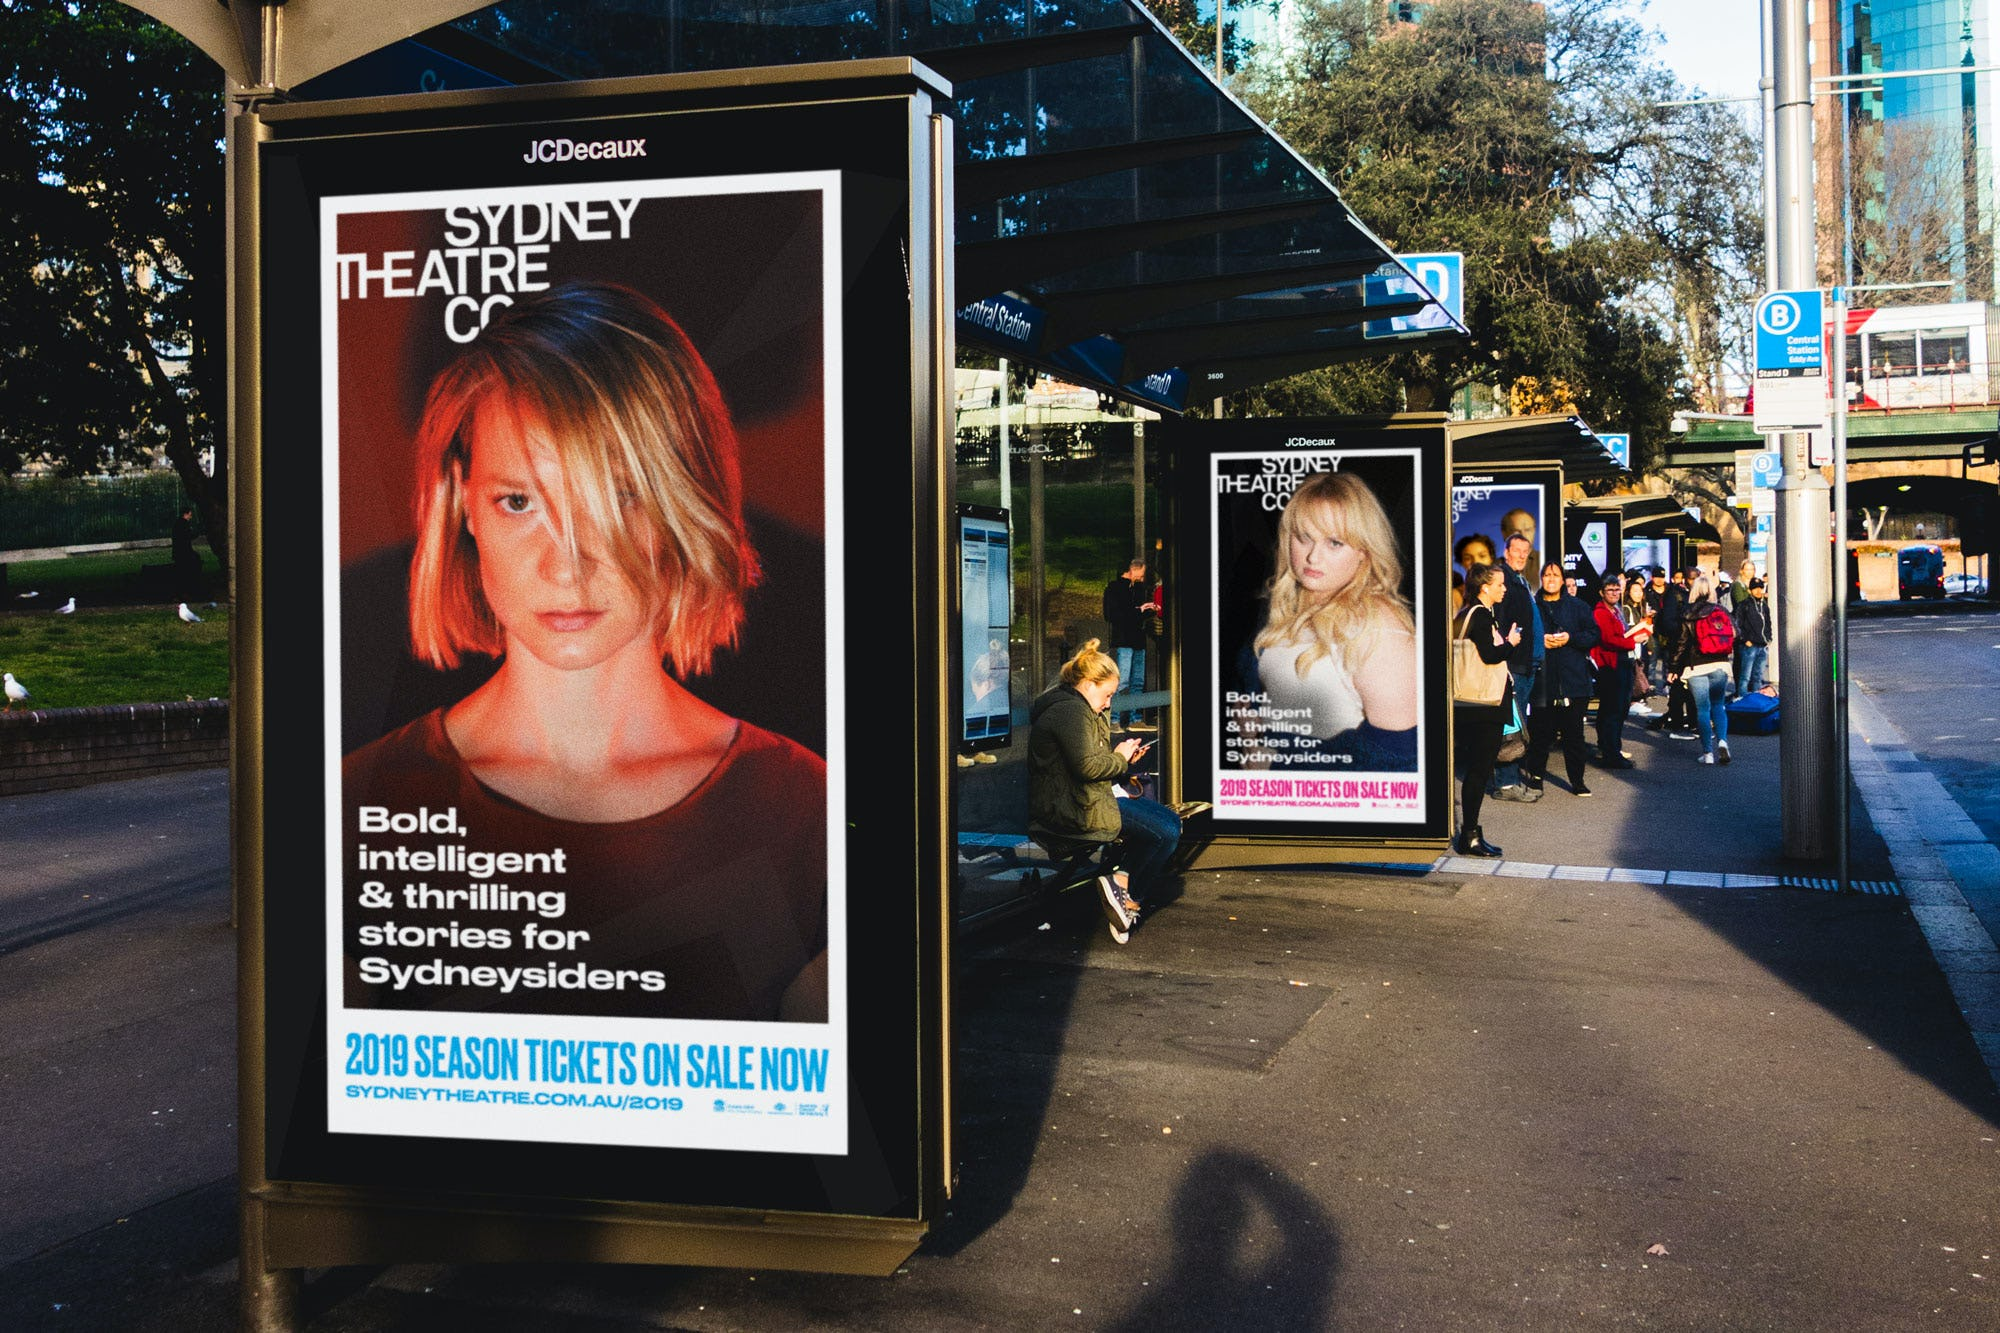 Sydney Theatre Company ads on bus shelters in Sydney